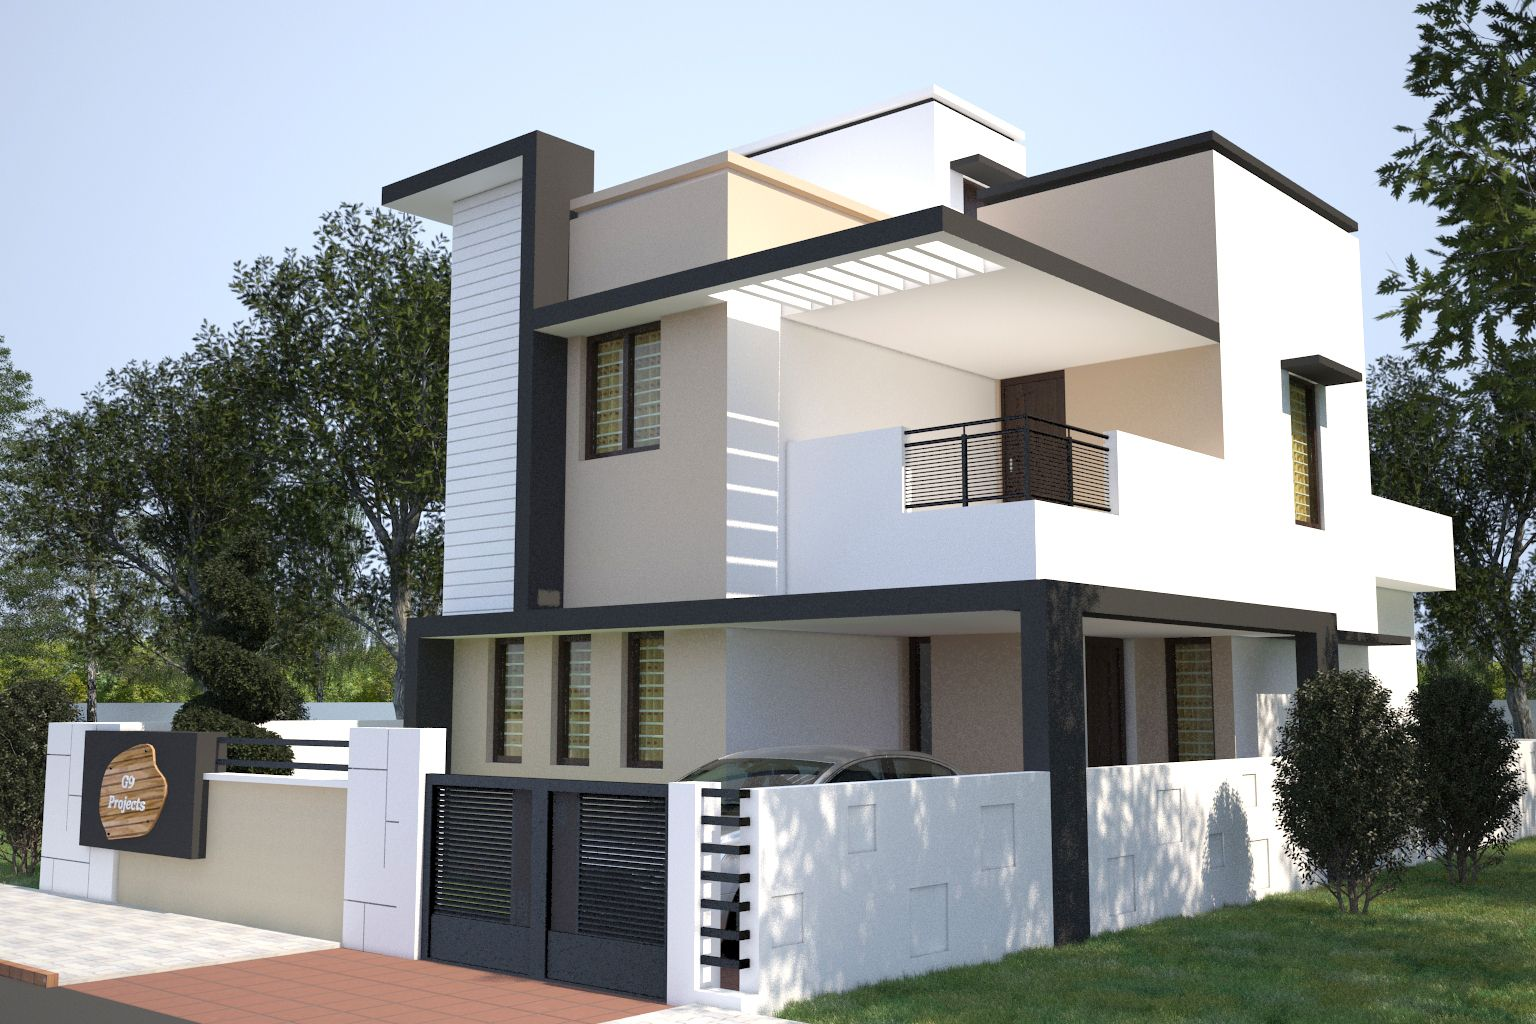 Elevations of residential buildings in indian photo for Home design ideas facebook